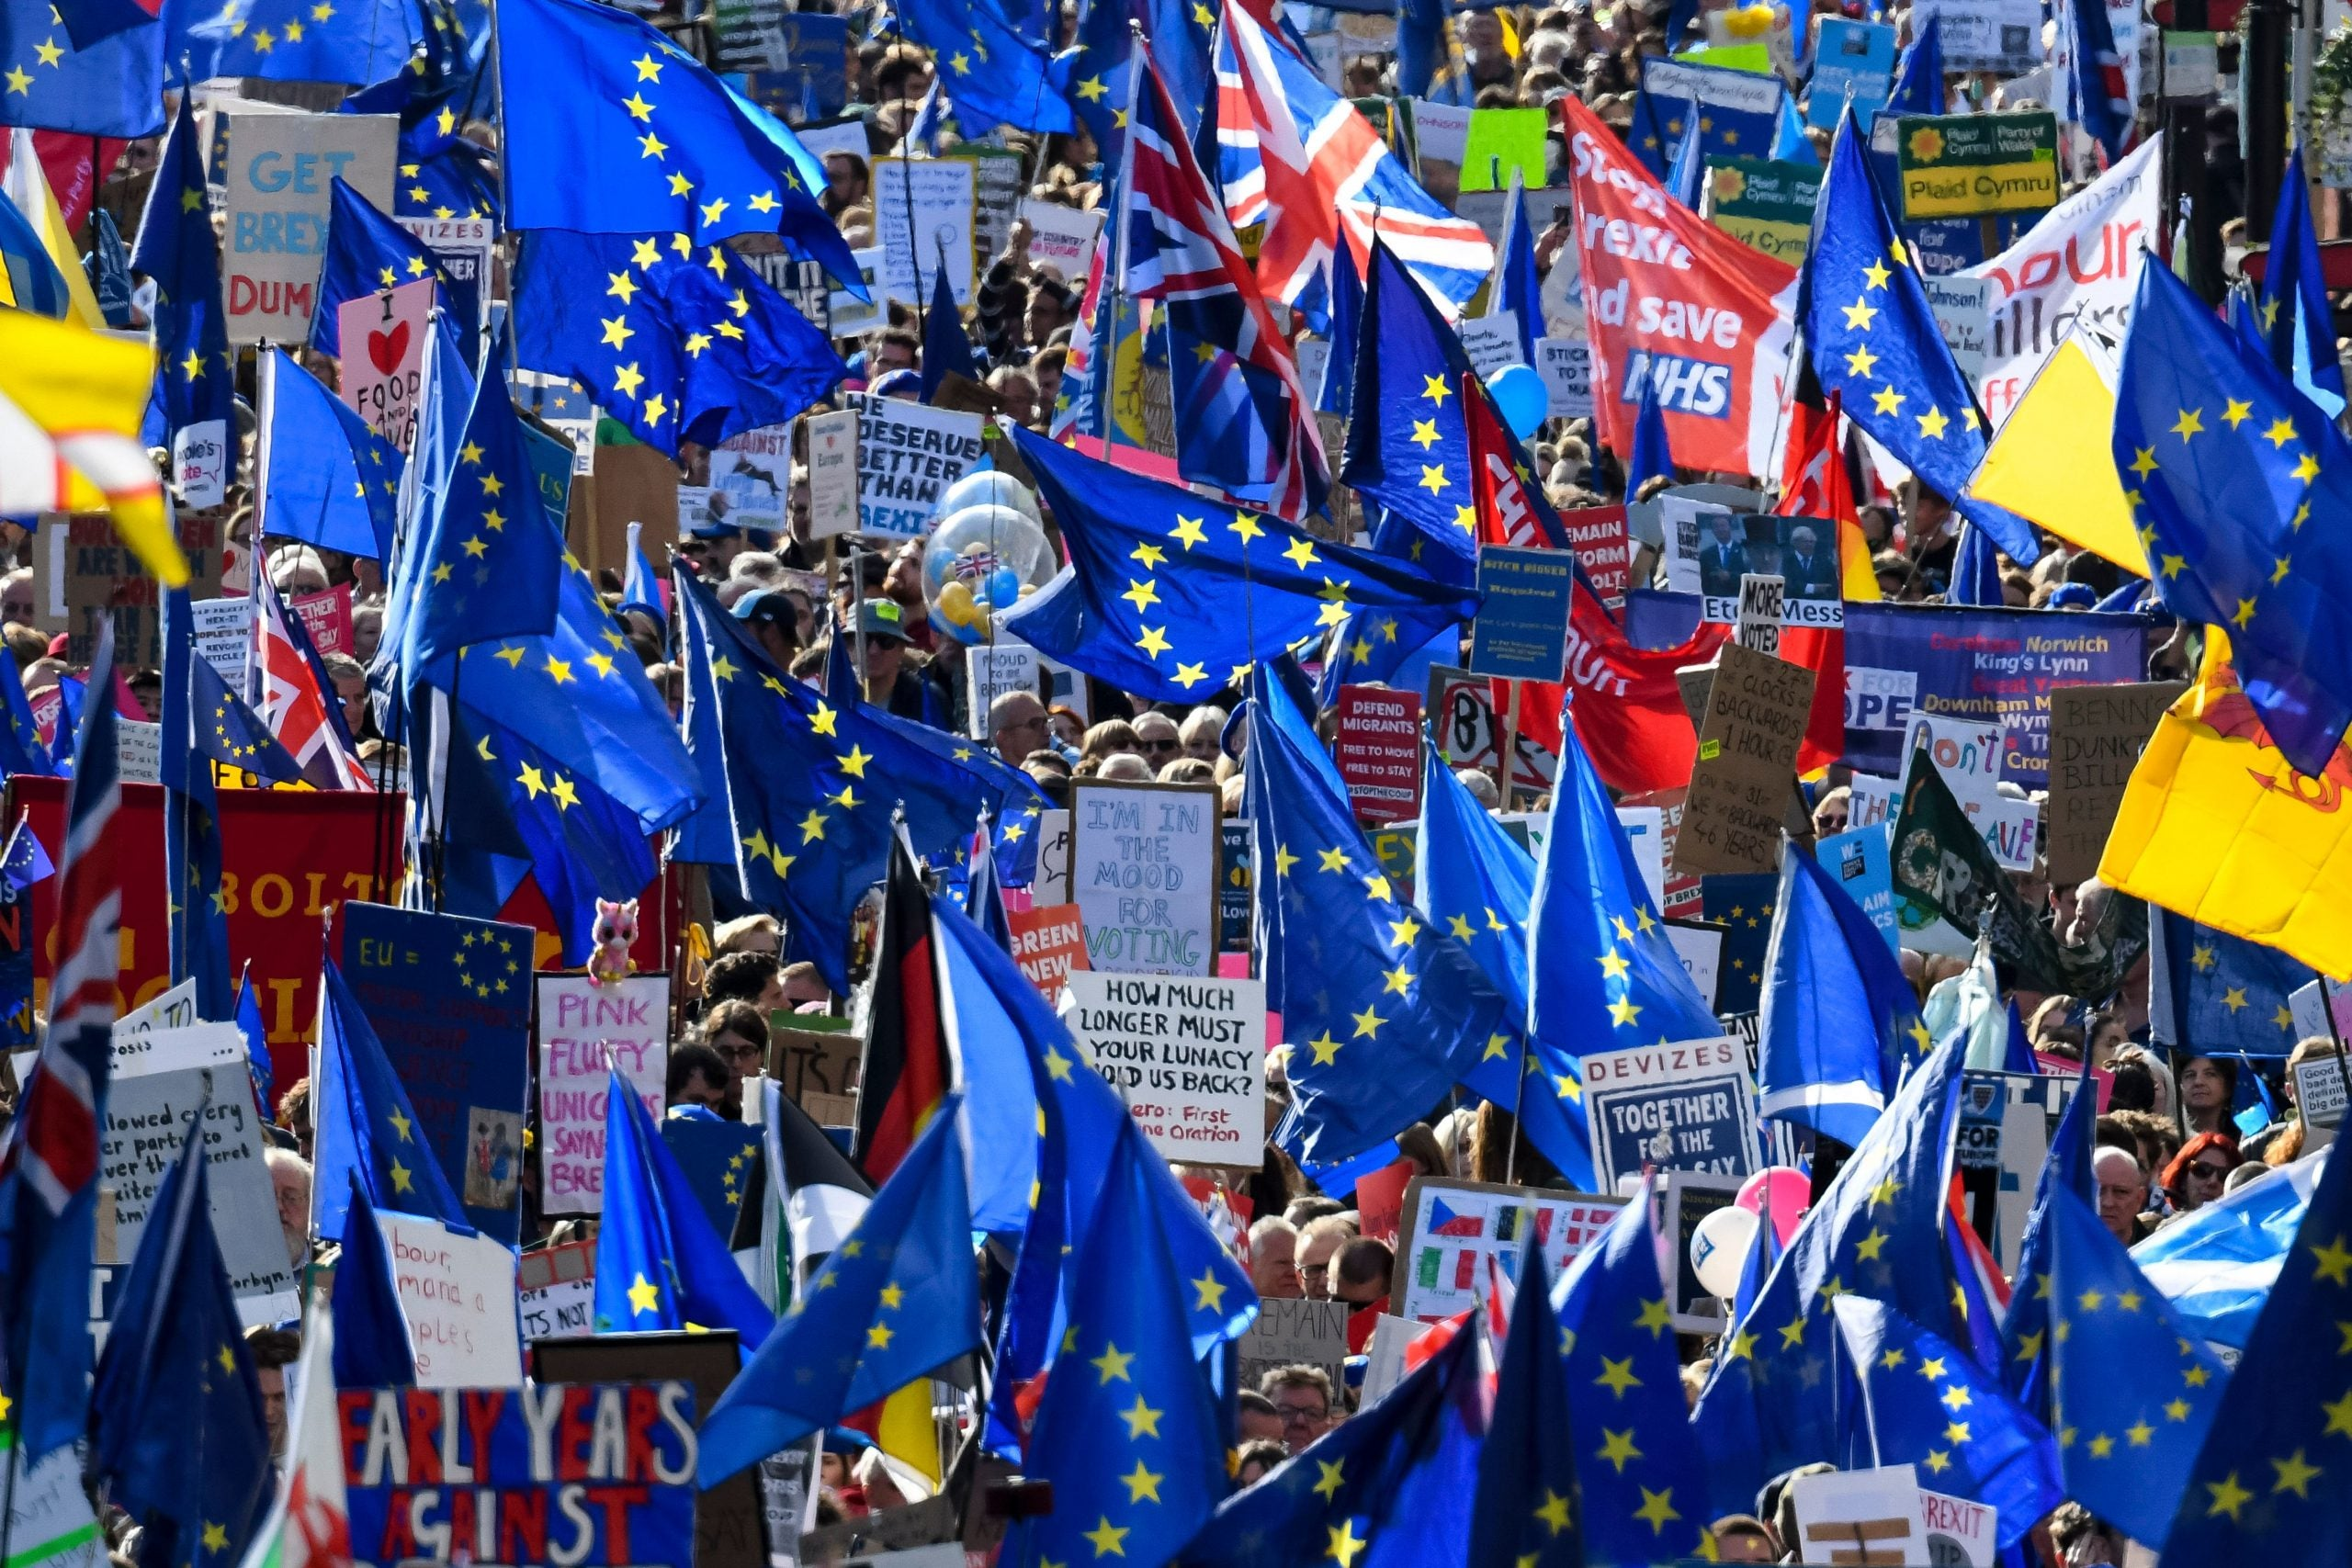 On the anti-Brexit march, I begin to think this kind of protest is a bit too mild